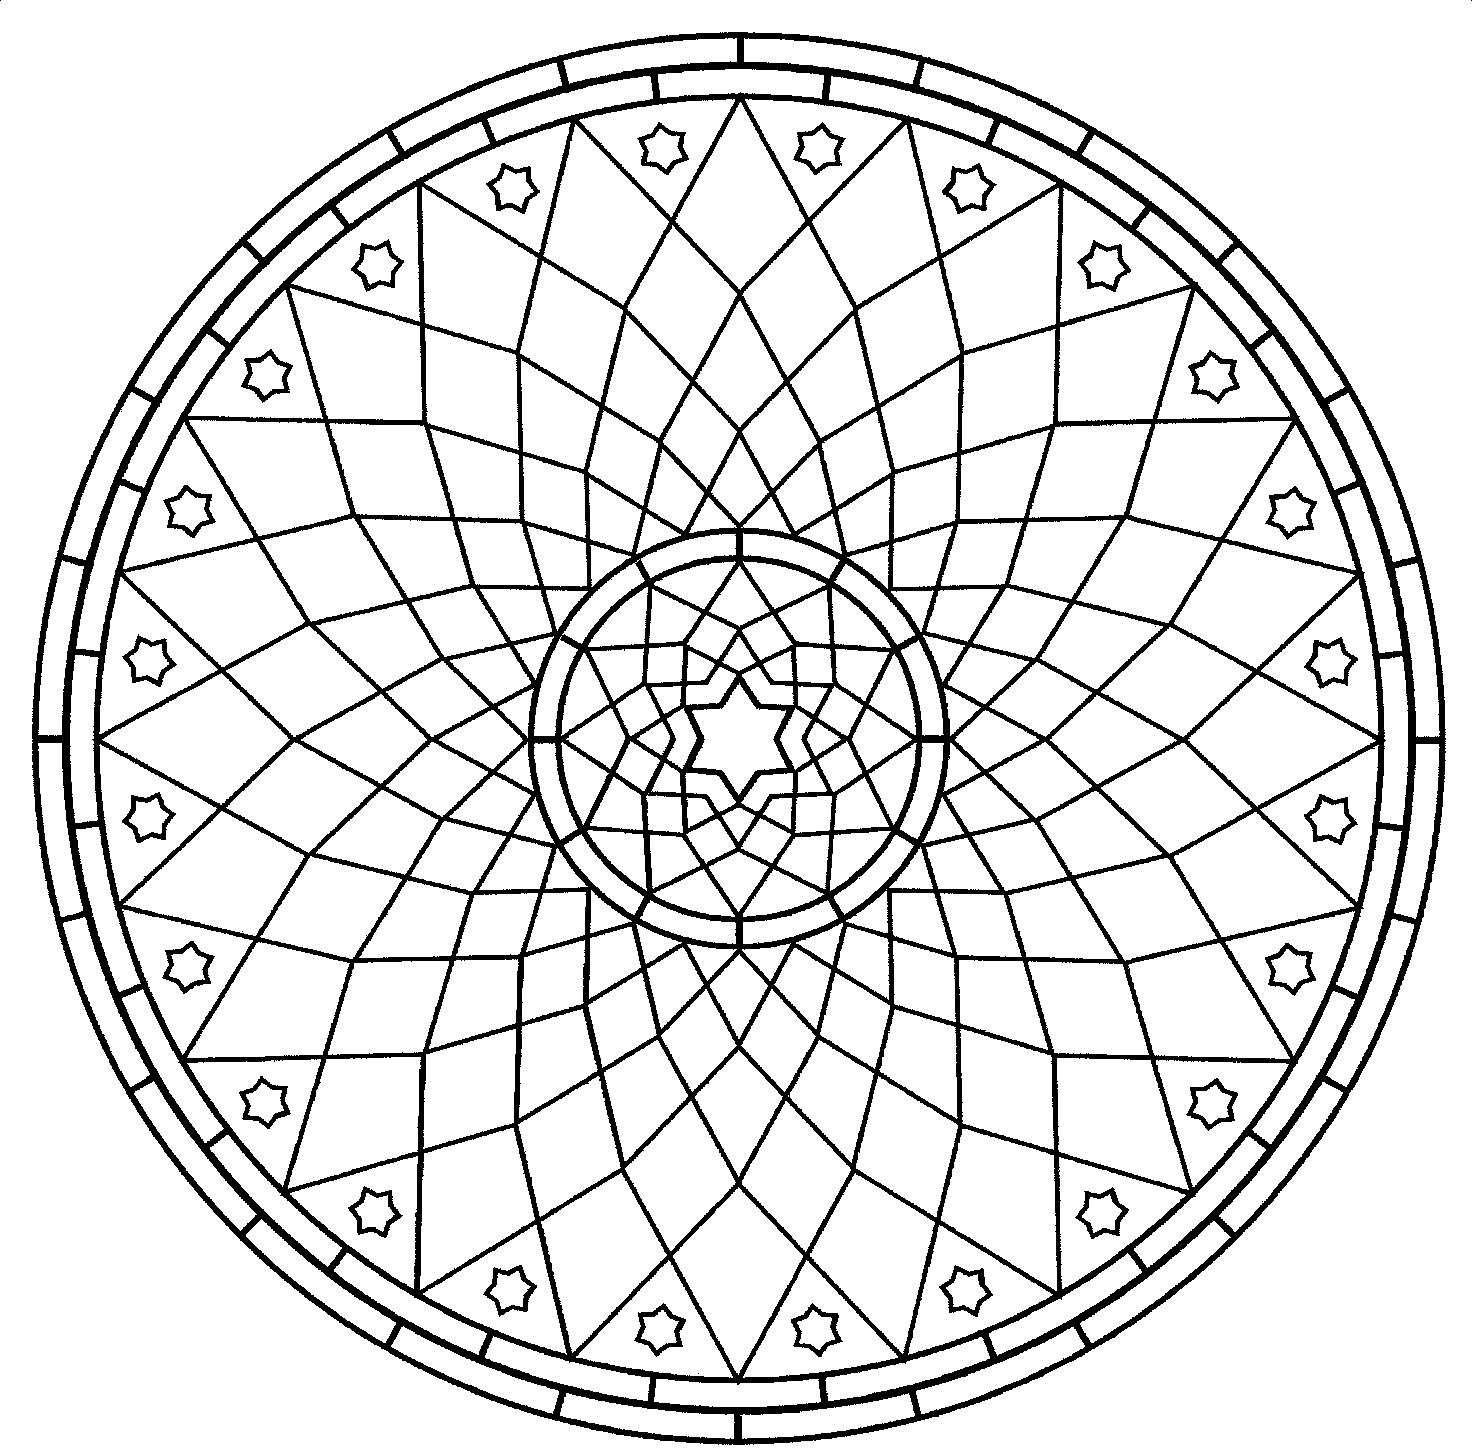 Mandalas Coloring Pages Coloring pages wallpaper 1472x1456